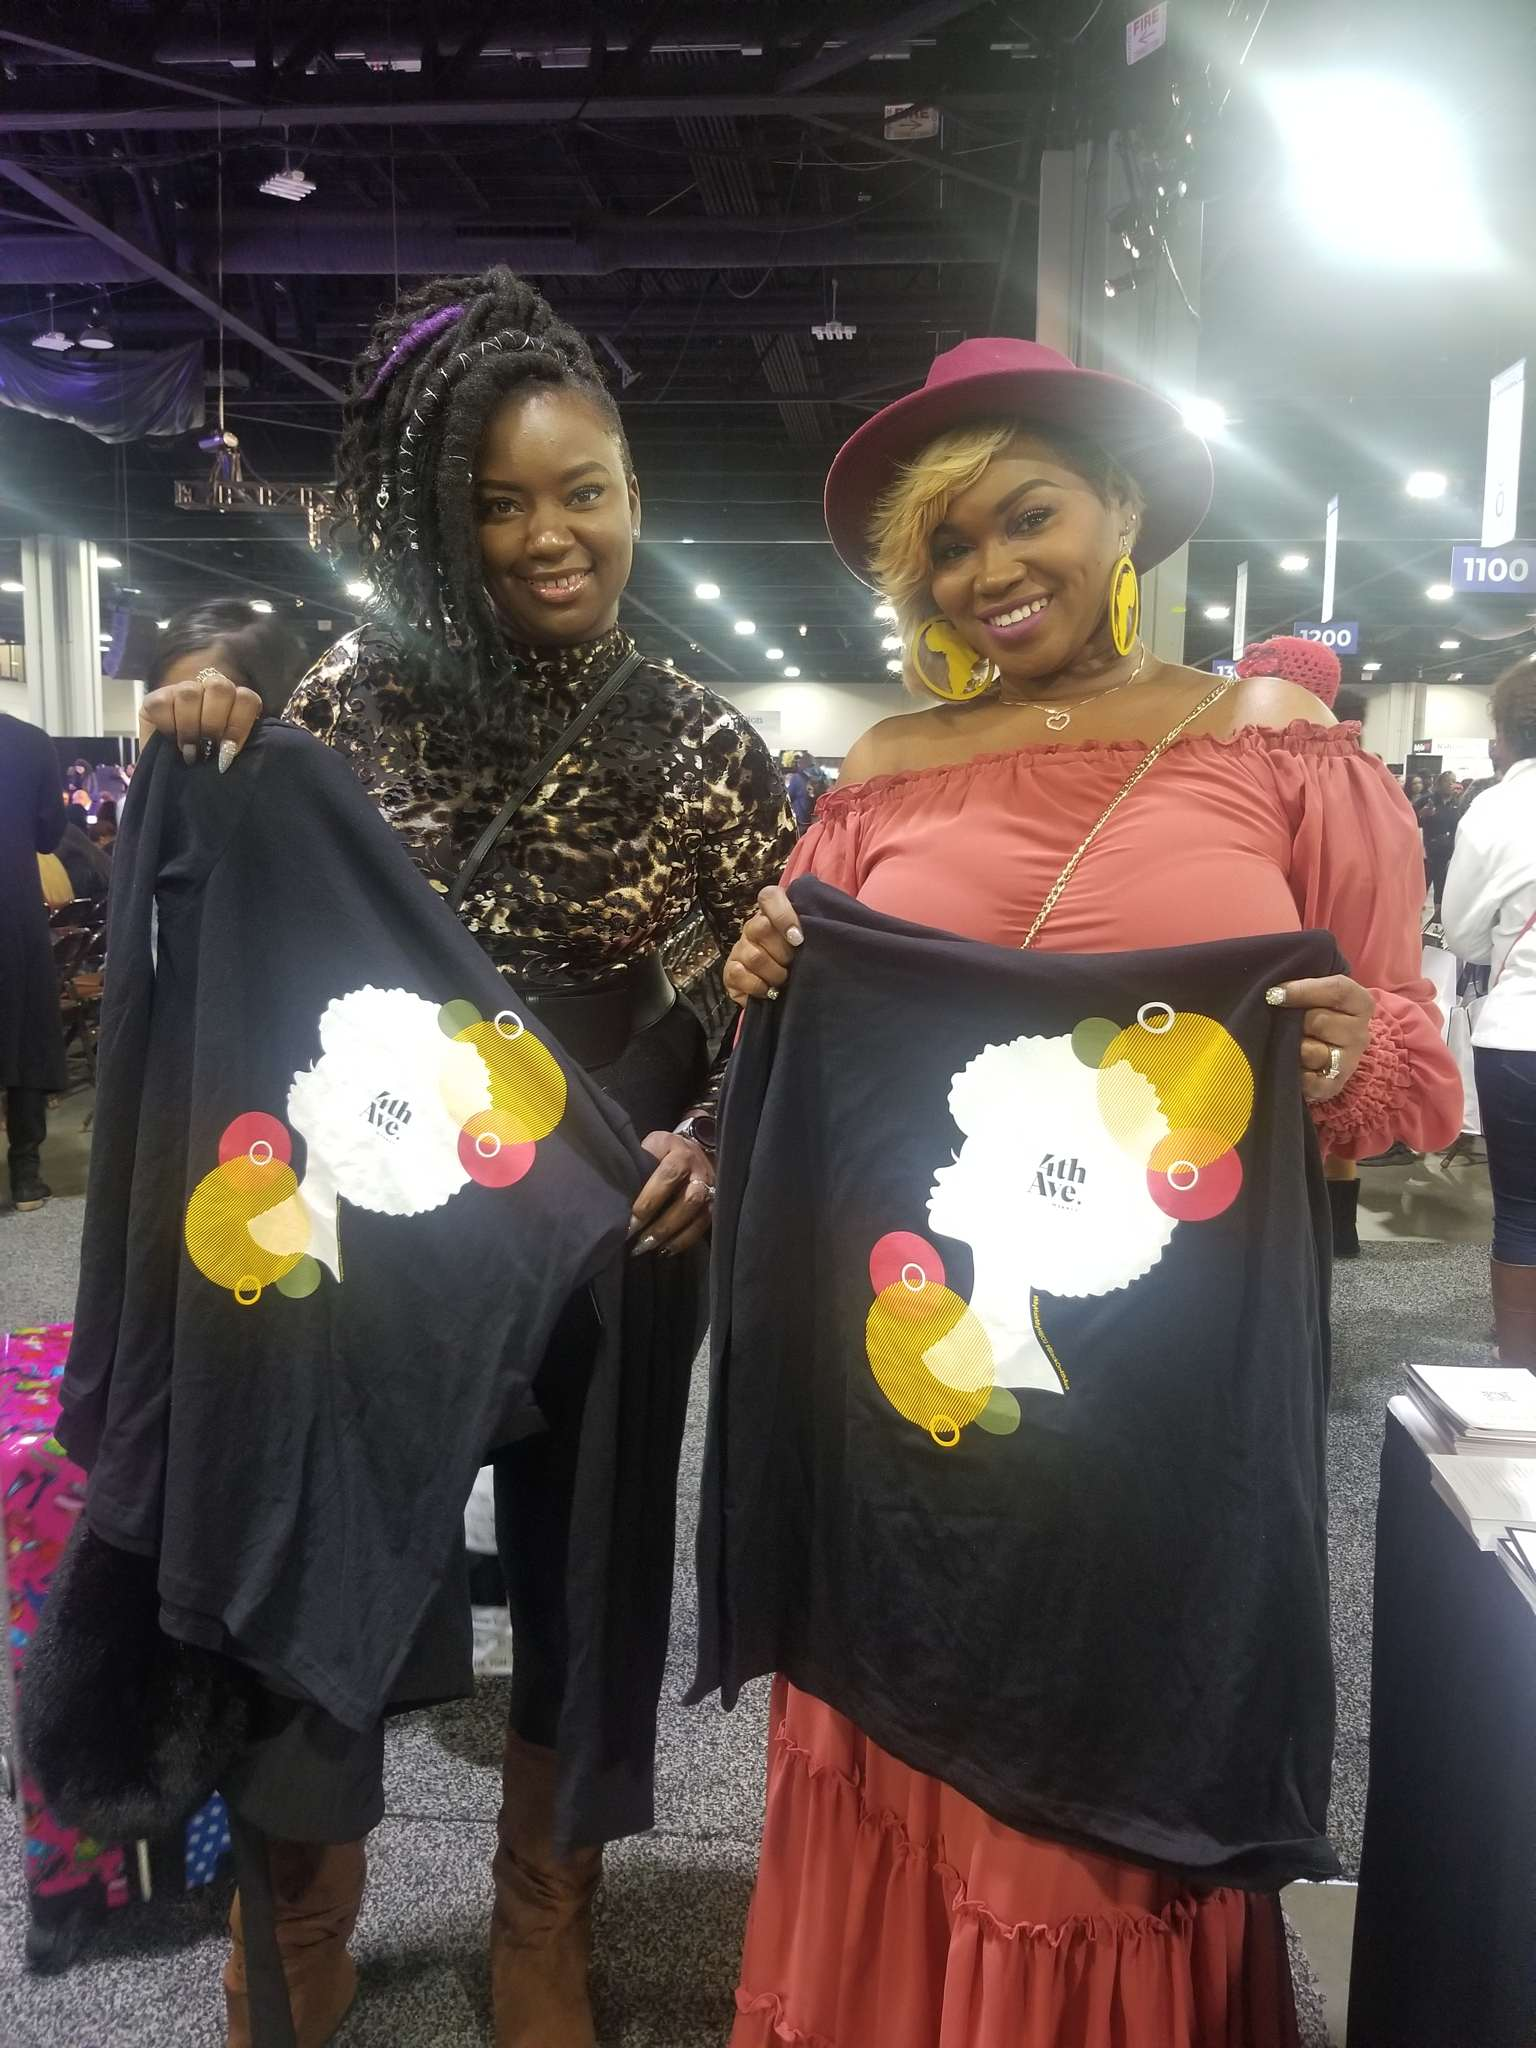 4th Ave Market Bronner Bros Show